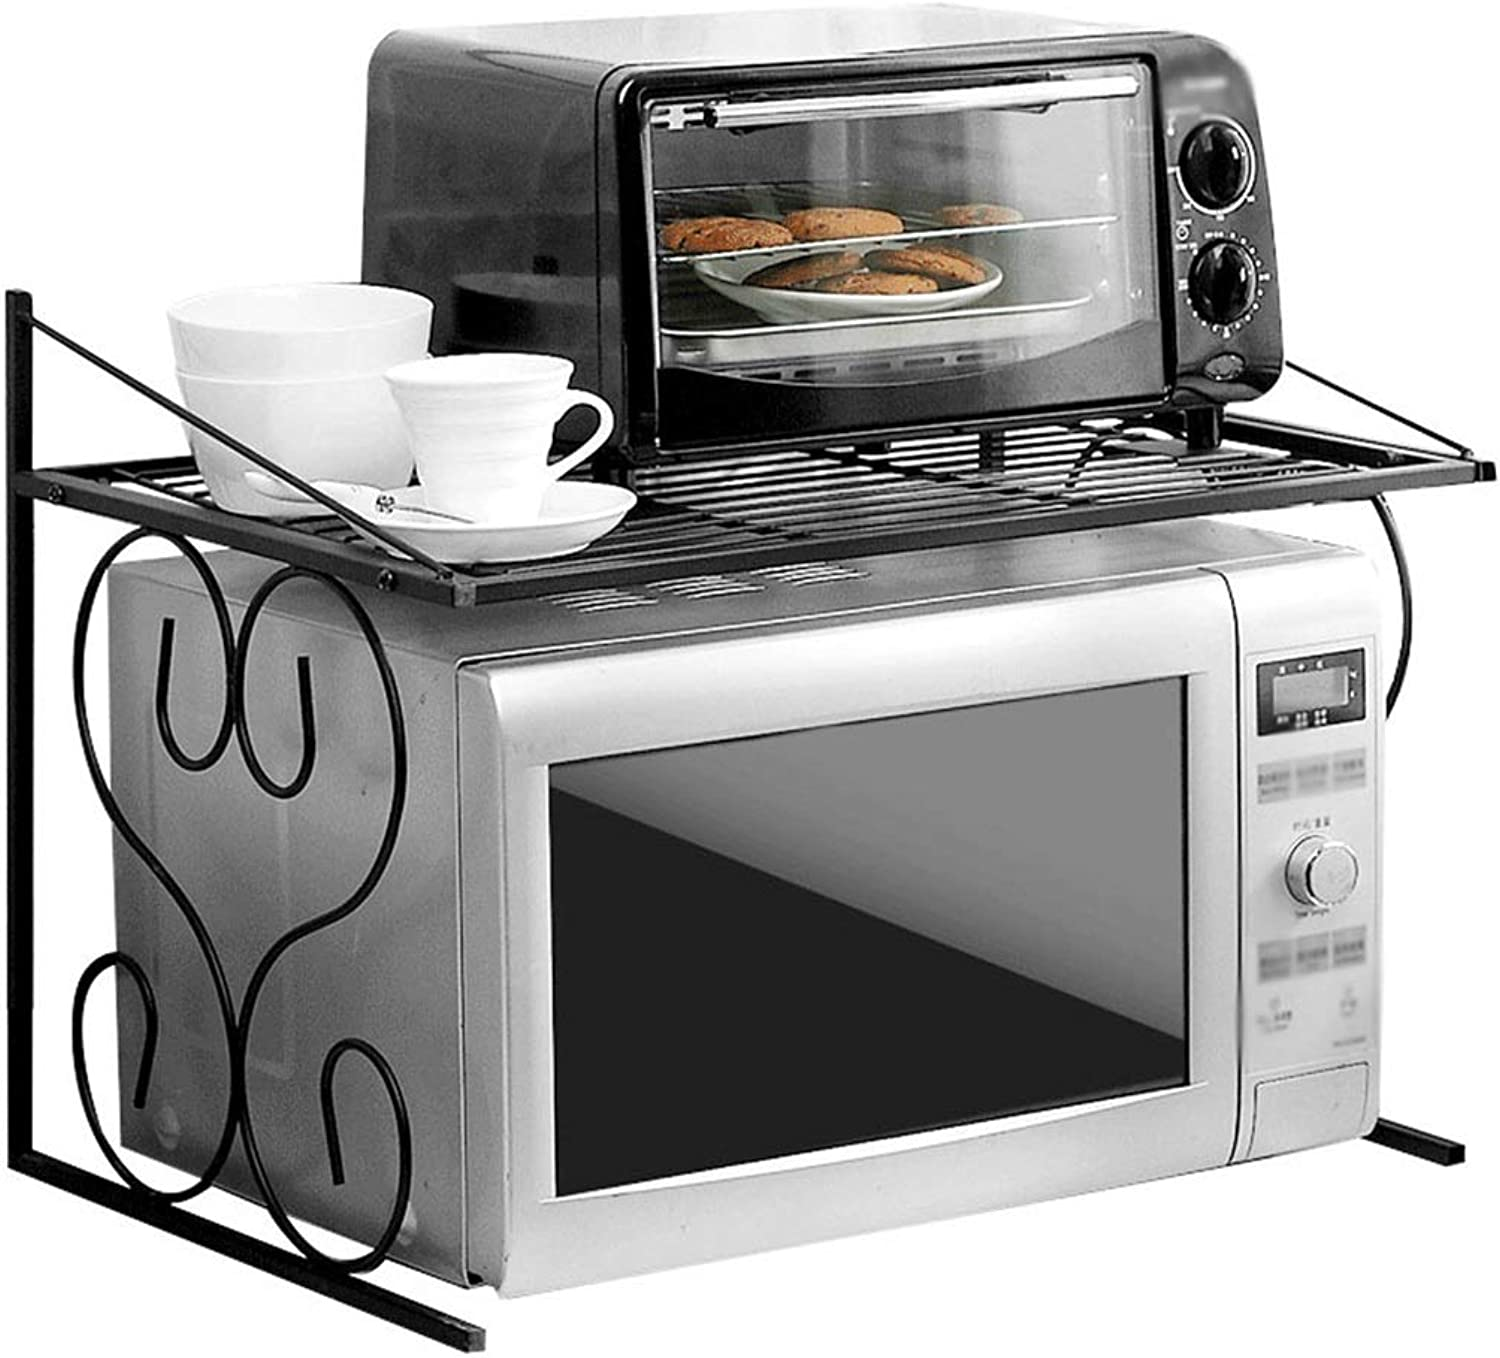 Kitchen Shelf Microwave Shelf Can Be Assembled with Good Stability Iron Paint Metal 1 Floor Stand Black 21.6  14.7  15.7 Inches